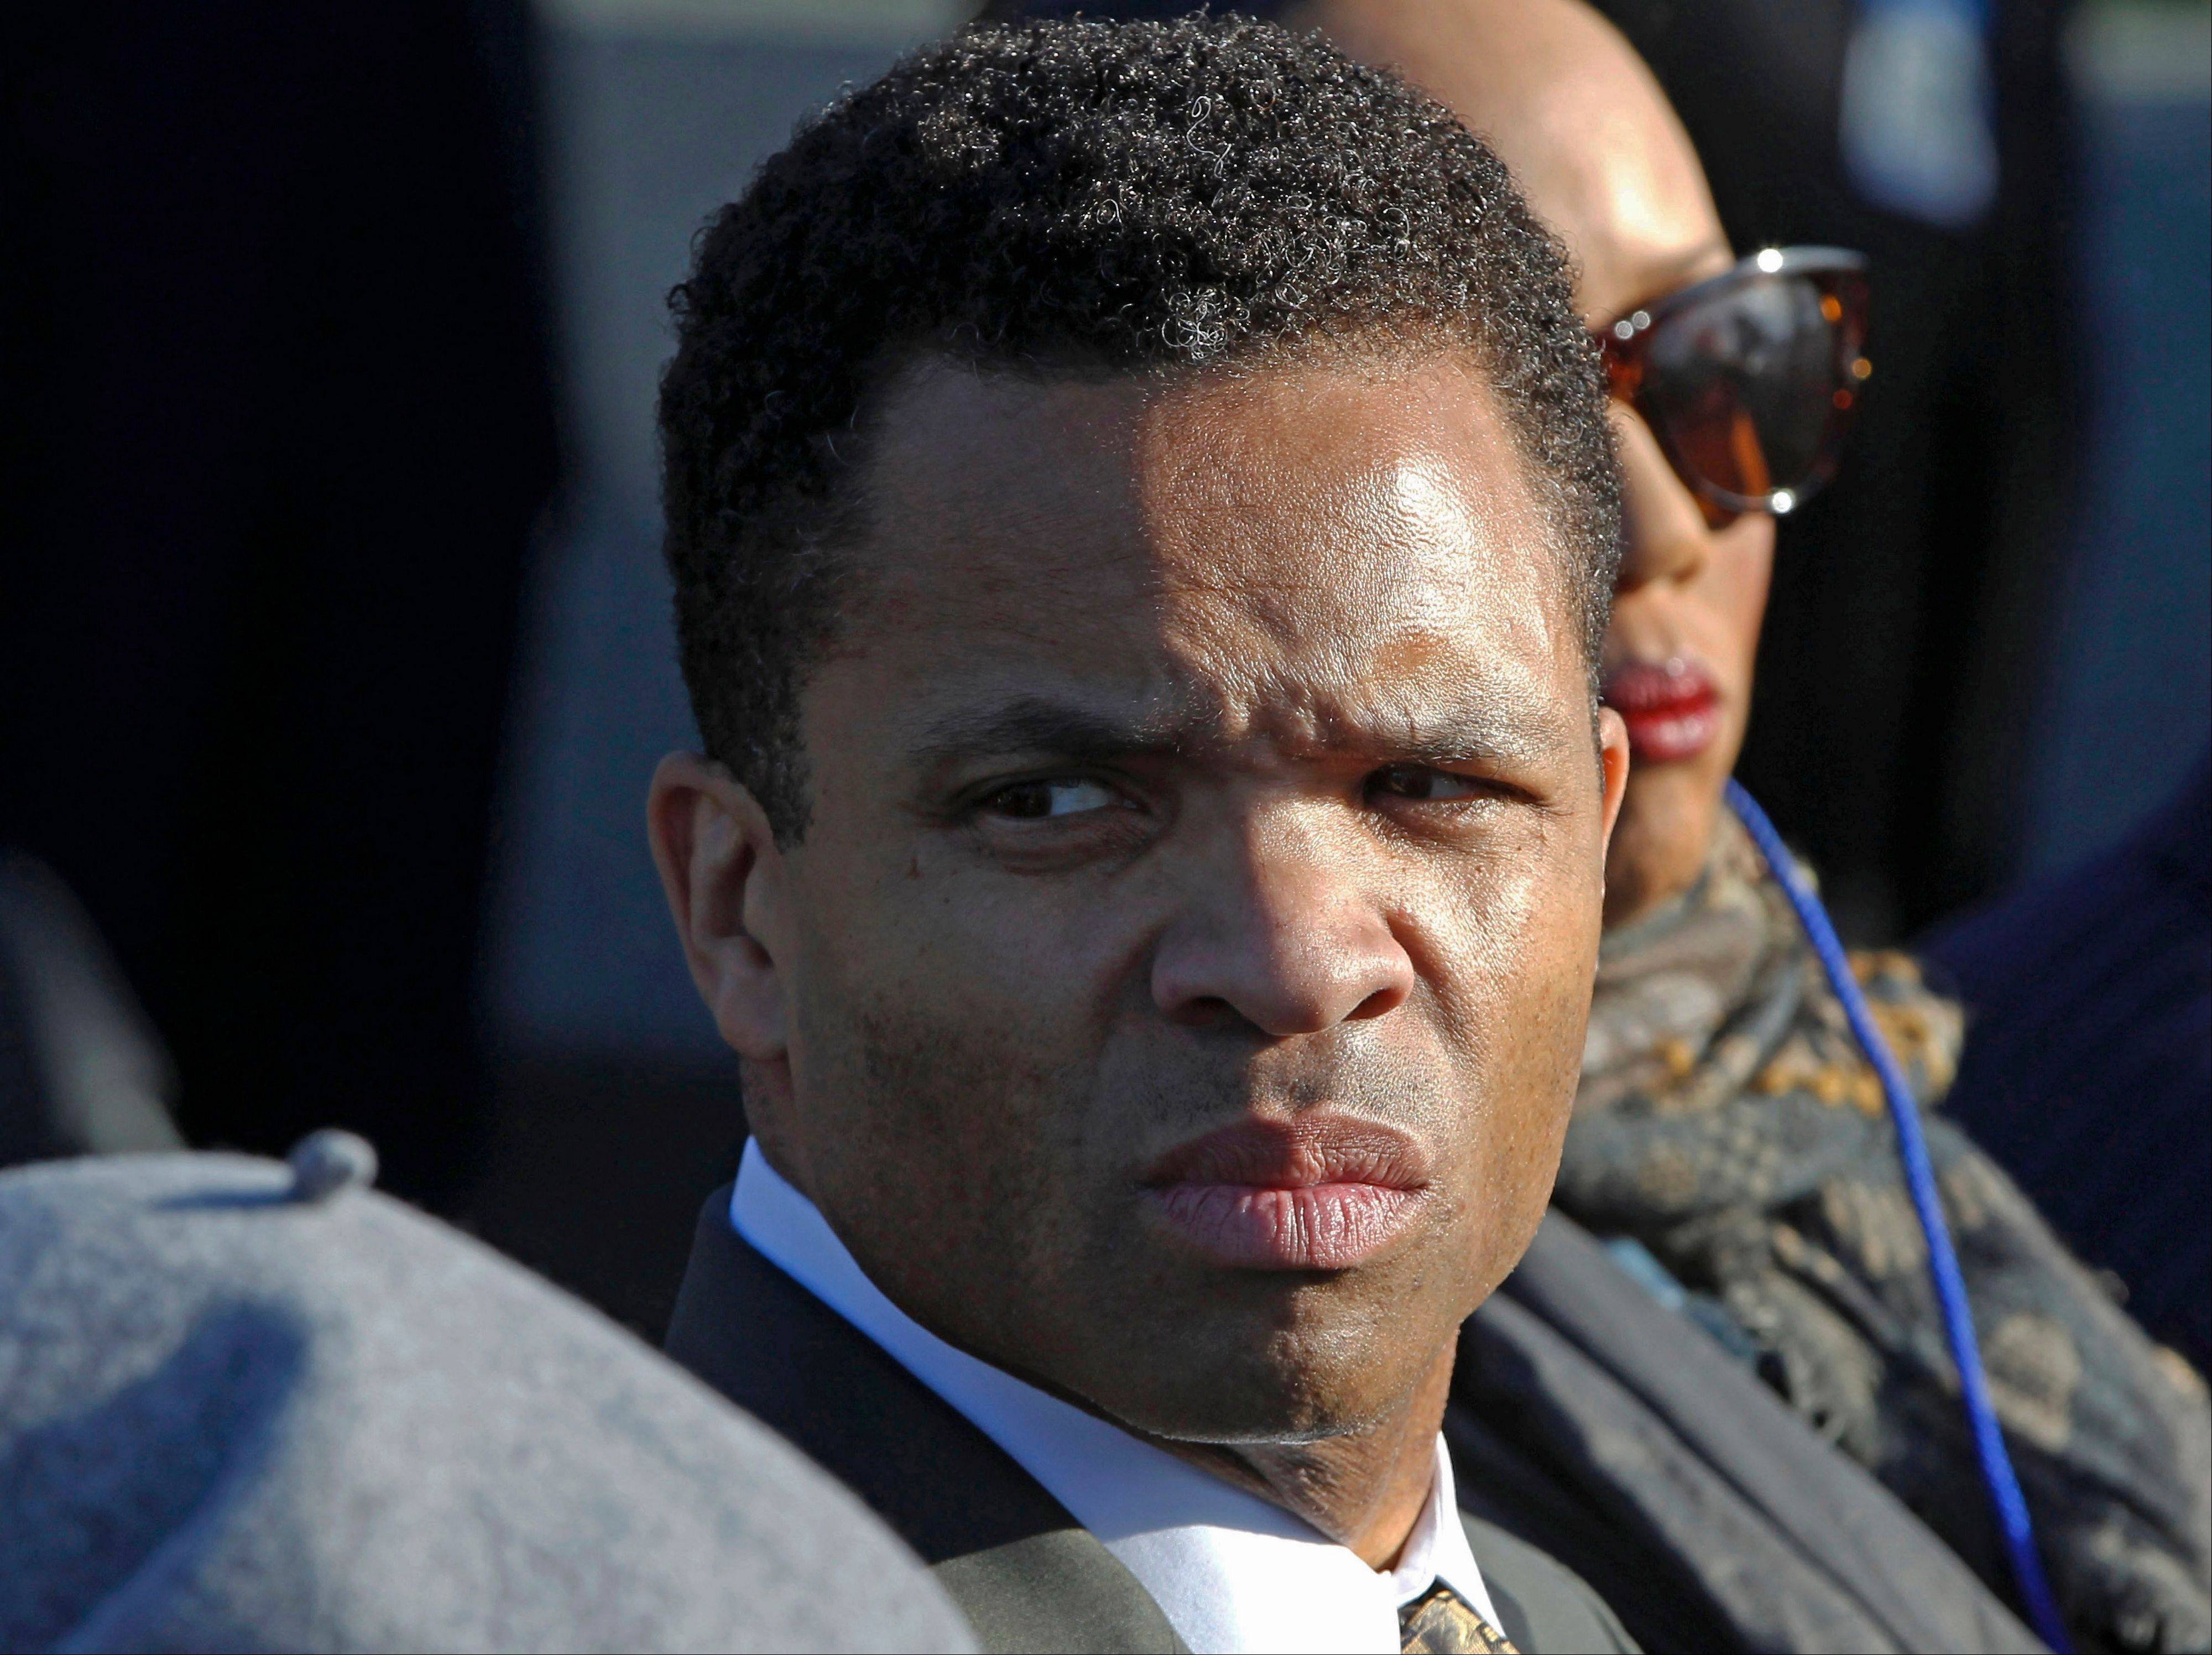 Associated Press/2011 For all the talk of Jesse Jackson Jr. aspiring to be a U.S. senator or mayor of the nation's third-largest city, his career wasn't ended by attempts to amass political power. Instead, it was the former congressman's desire for flashy items like a gold-plated Rolex watch and furs, and collectibles, such as Eddie Van Halen's guitar.